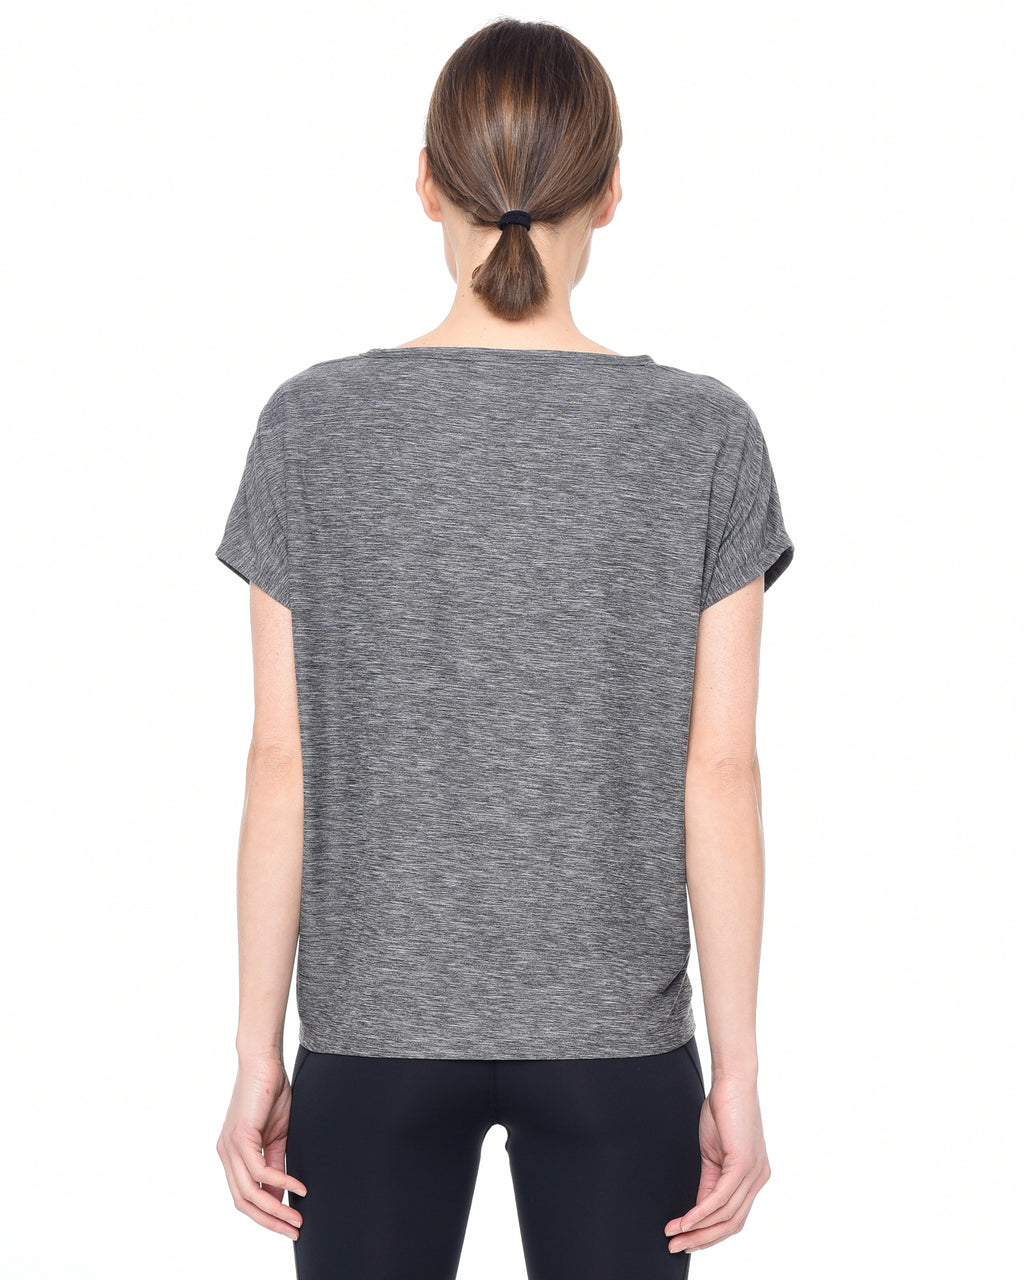 Emerson Top Charcoal